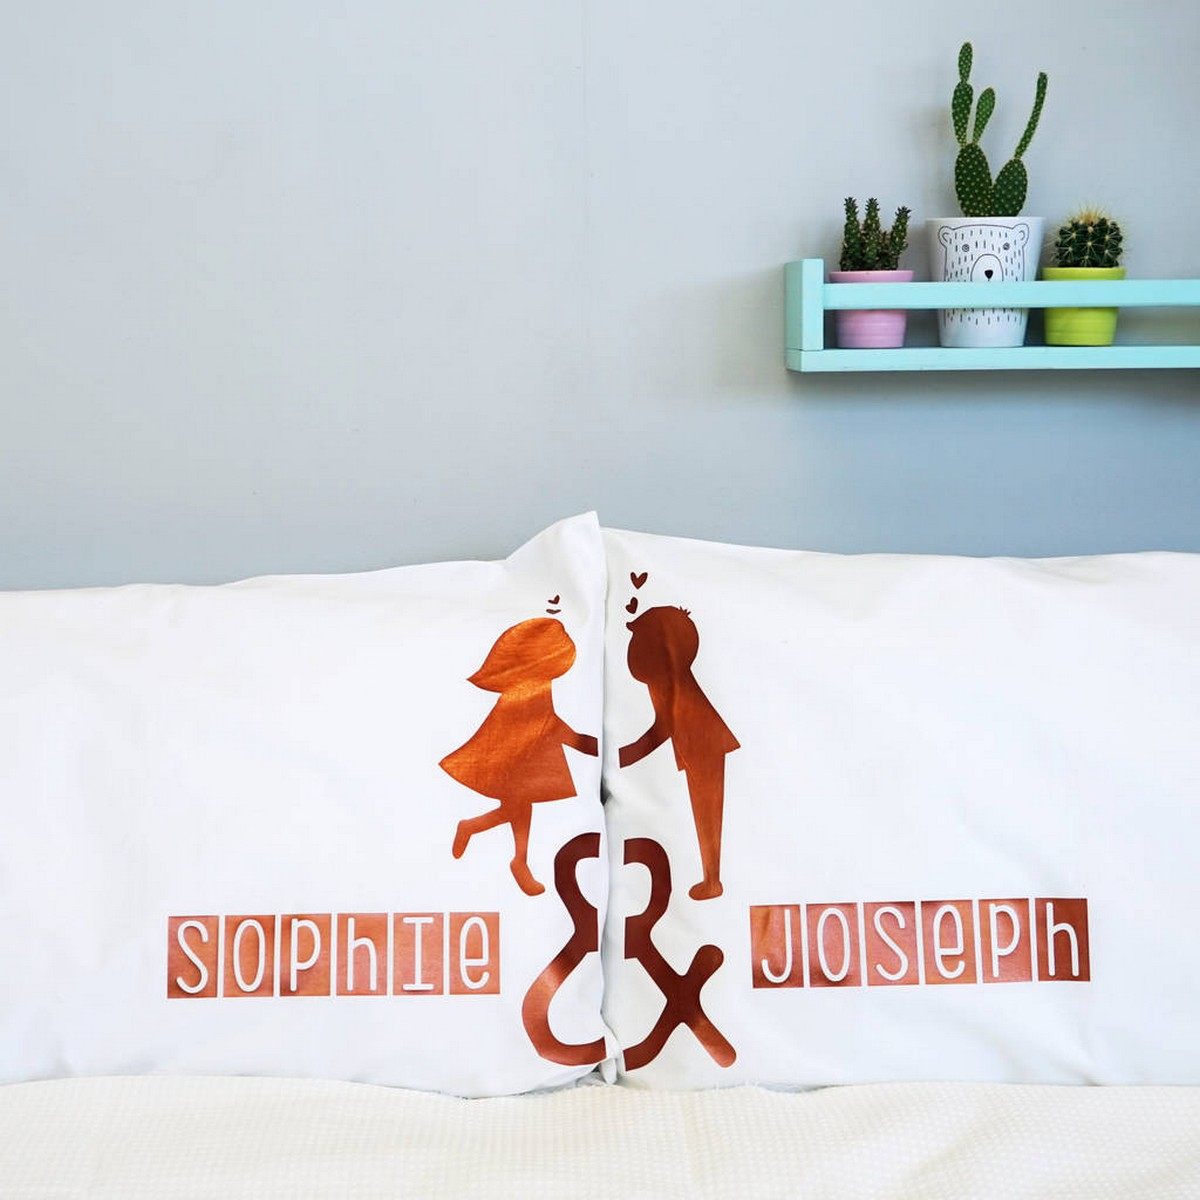 Whether you're looking to transform comfy bed pillows or decorative throw pillows, having your own personalised pillow cases will add perfect finishing touch to your bedding. It can also be a lot of fun!